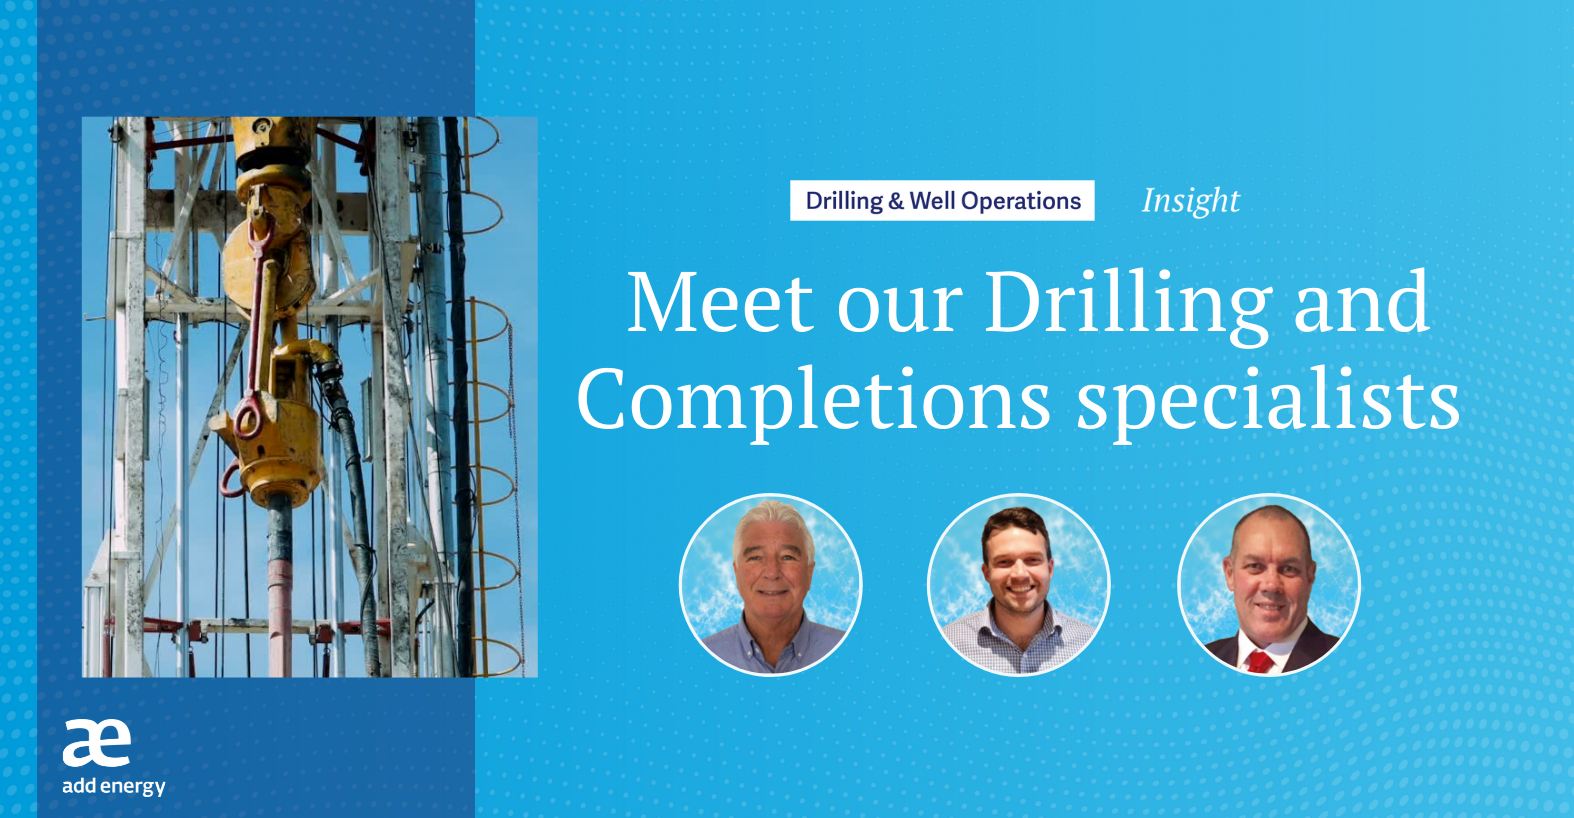 Meet ourdrillingand completions specialists